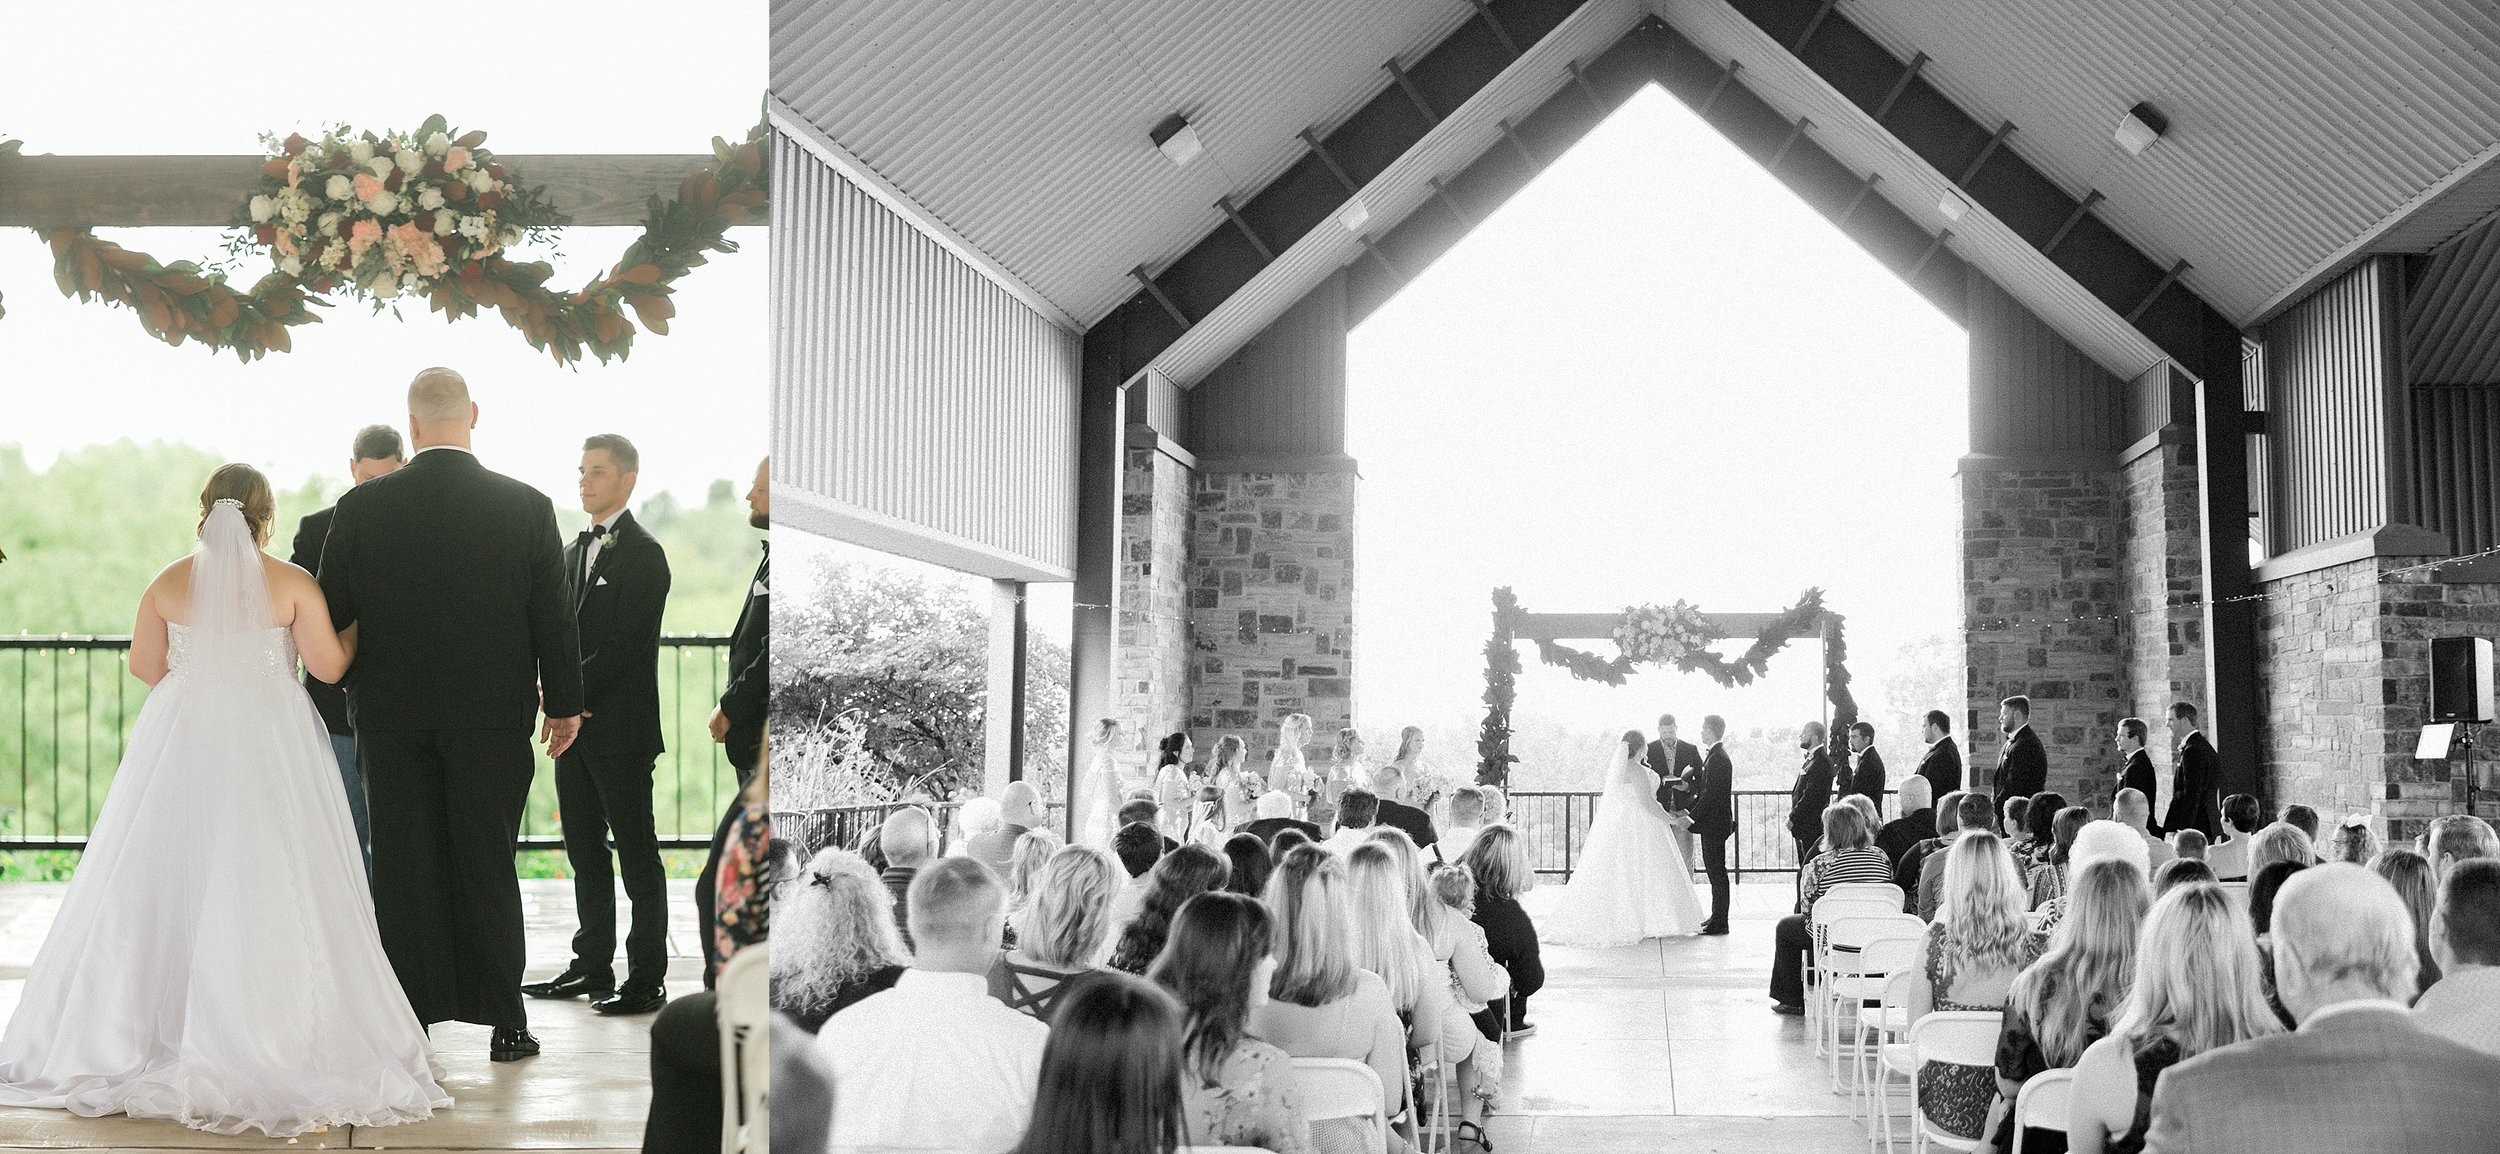 Ryanne-and-william-wedding-at-river-bend-nature-center-wichita-falls-texas-two-clever-chicks-0082.jpg